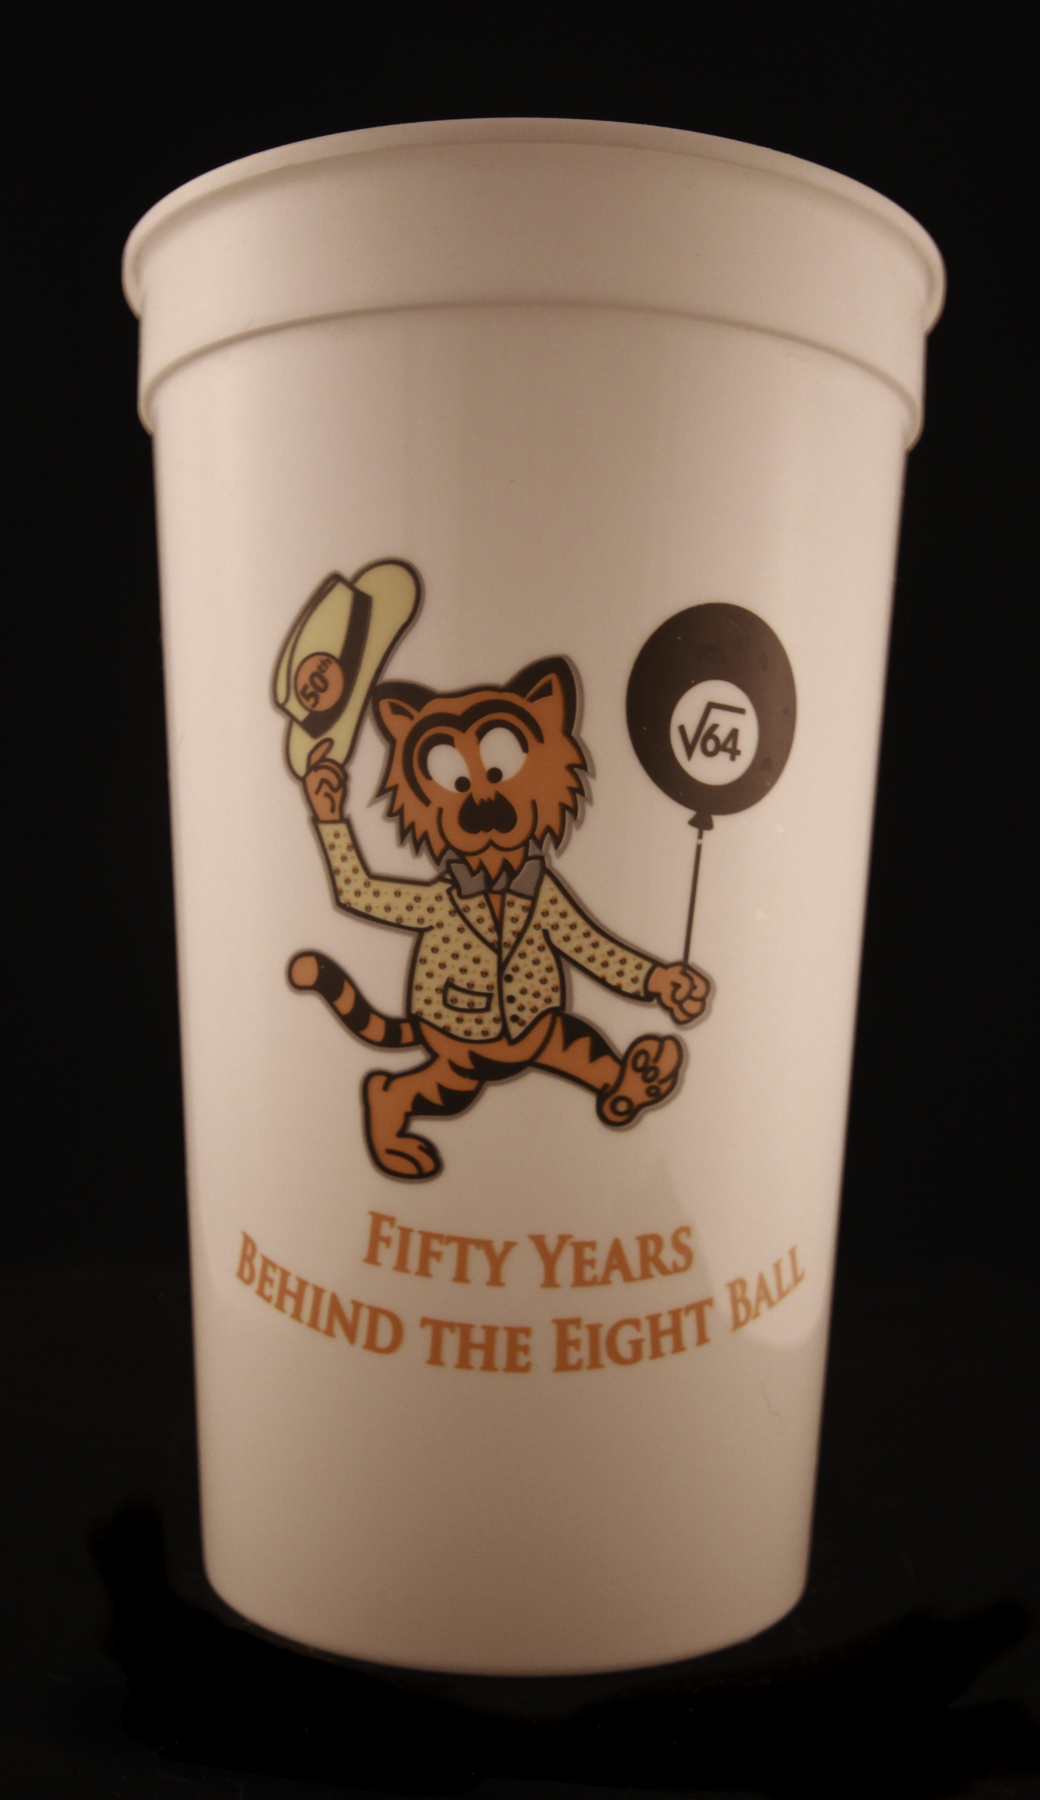 1964 Beer Cup 50th Reunion